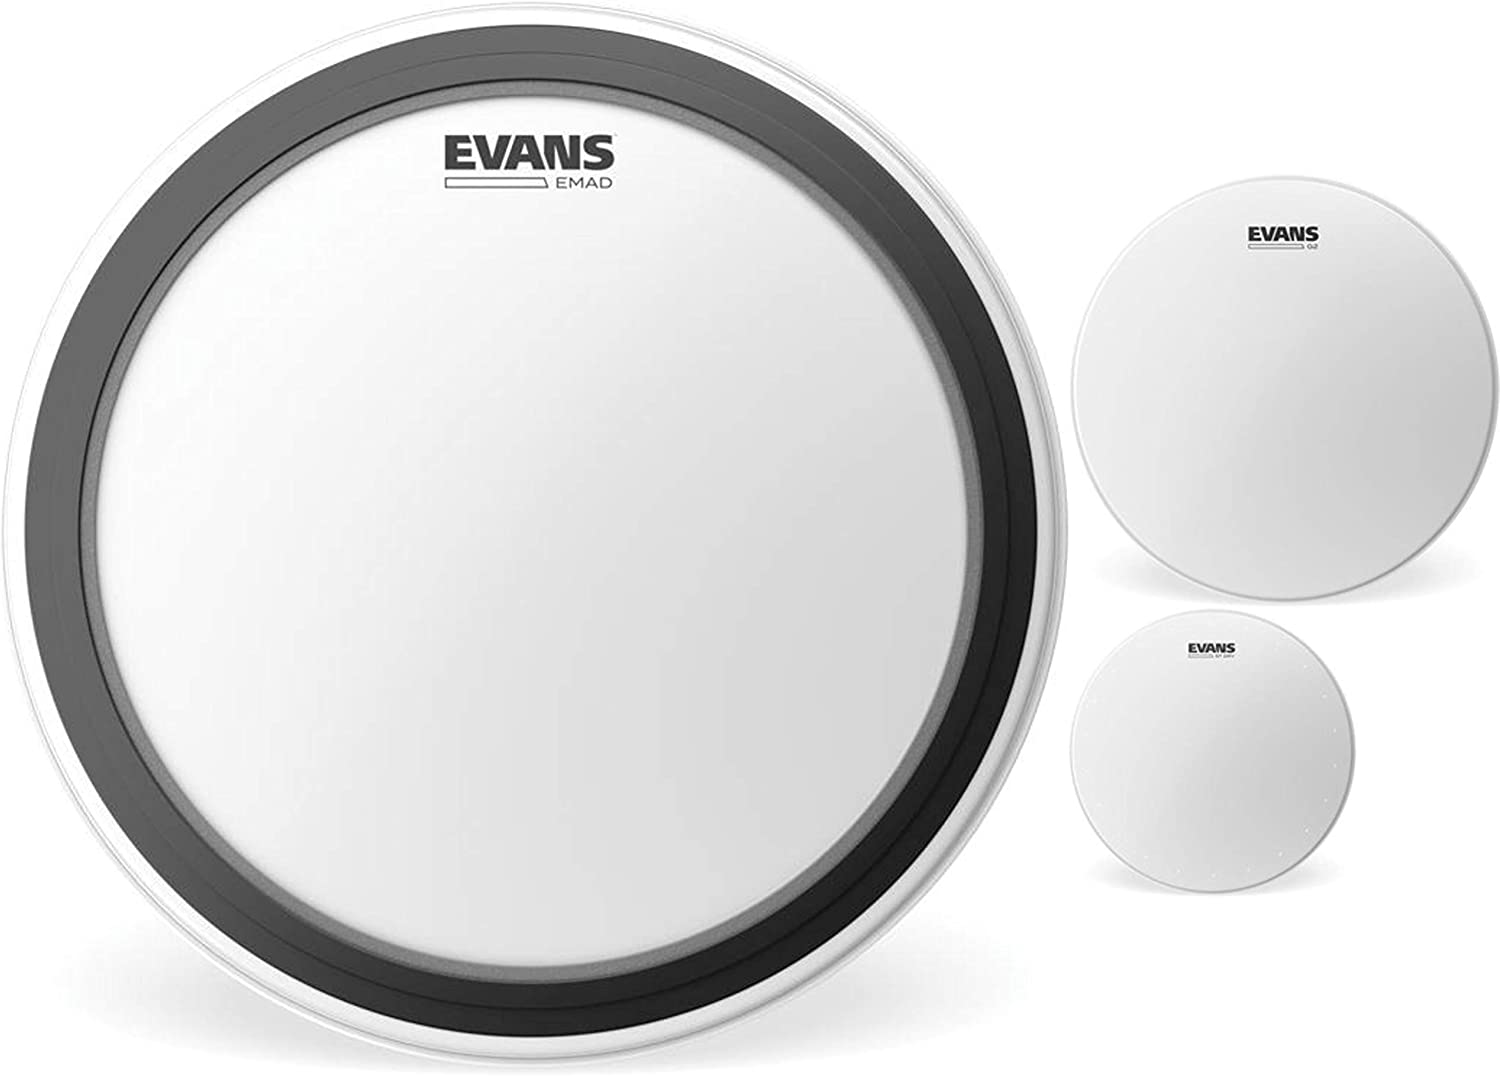 Evans OFFicial mail order BD18EMADCW + B16G2 B14STD Bundle Topics on TV - Value